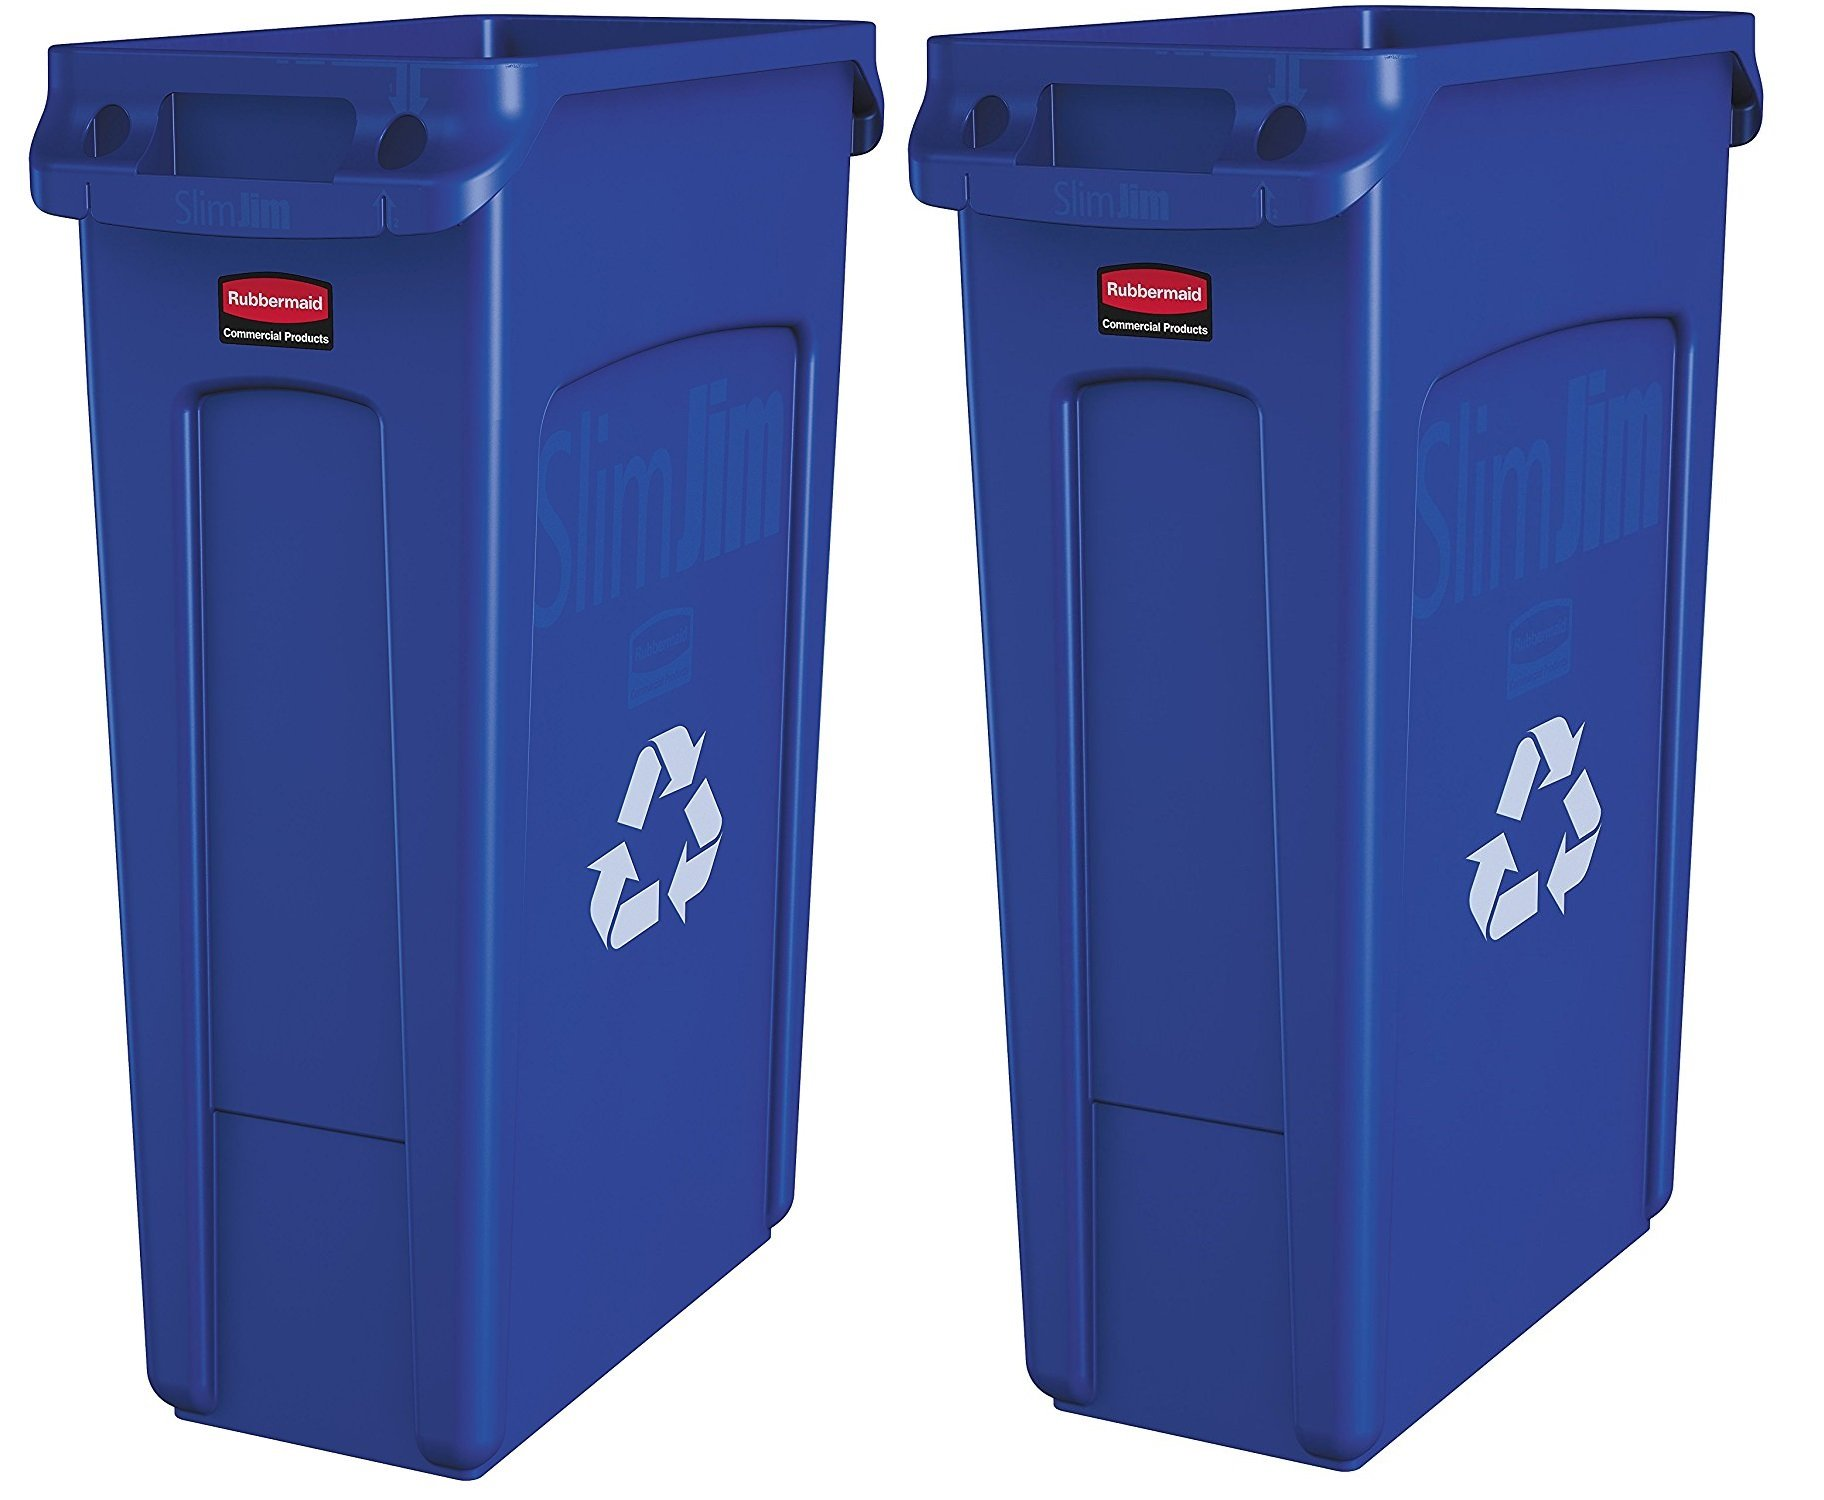 Rubbermaid Commercial Slim Jim Recycling Container with Venting Channels, Plastic, 23 Gallons, Blue (Pack of 2) by Rubbermaid Commercial Products